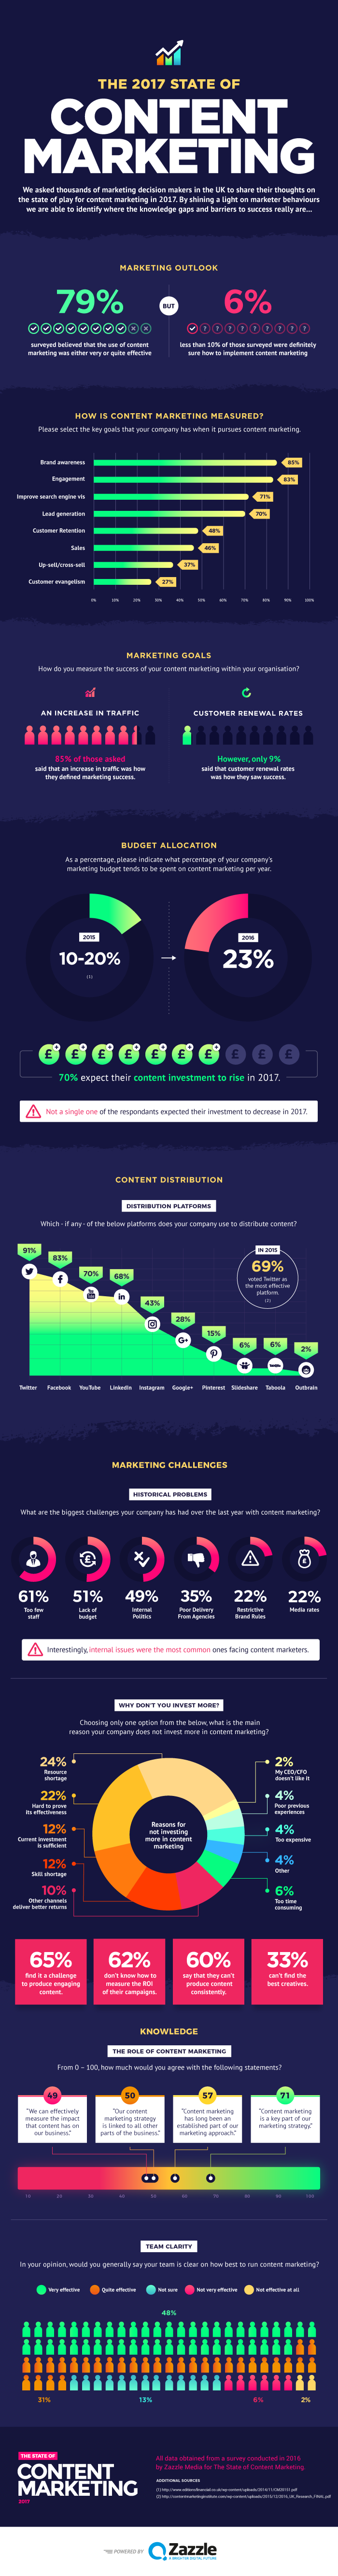 State of Content Mrketing in 2017 [infographic]